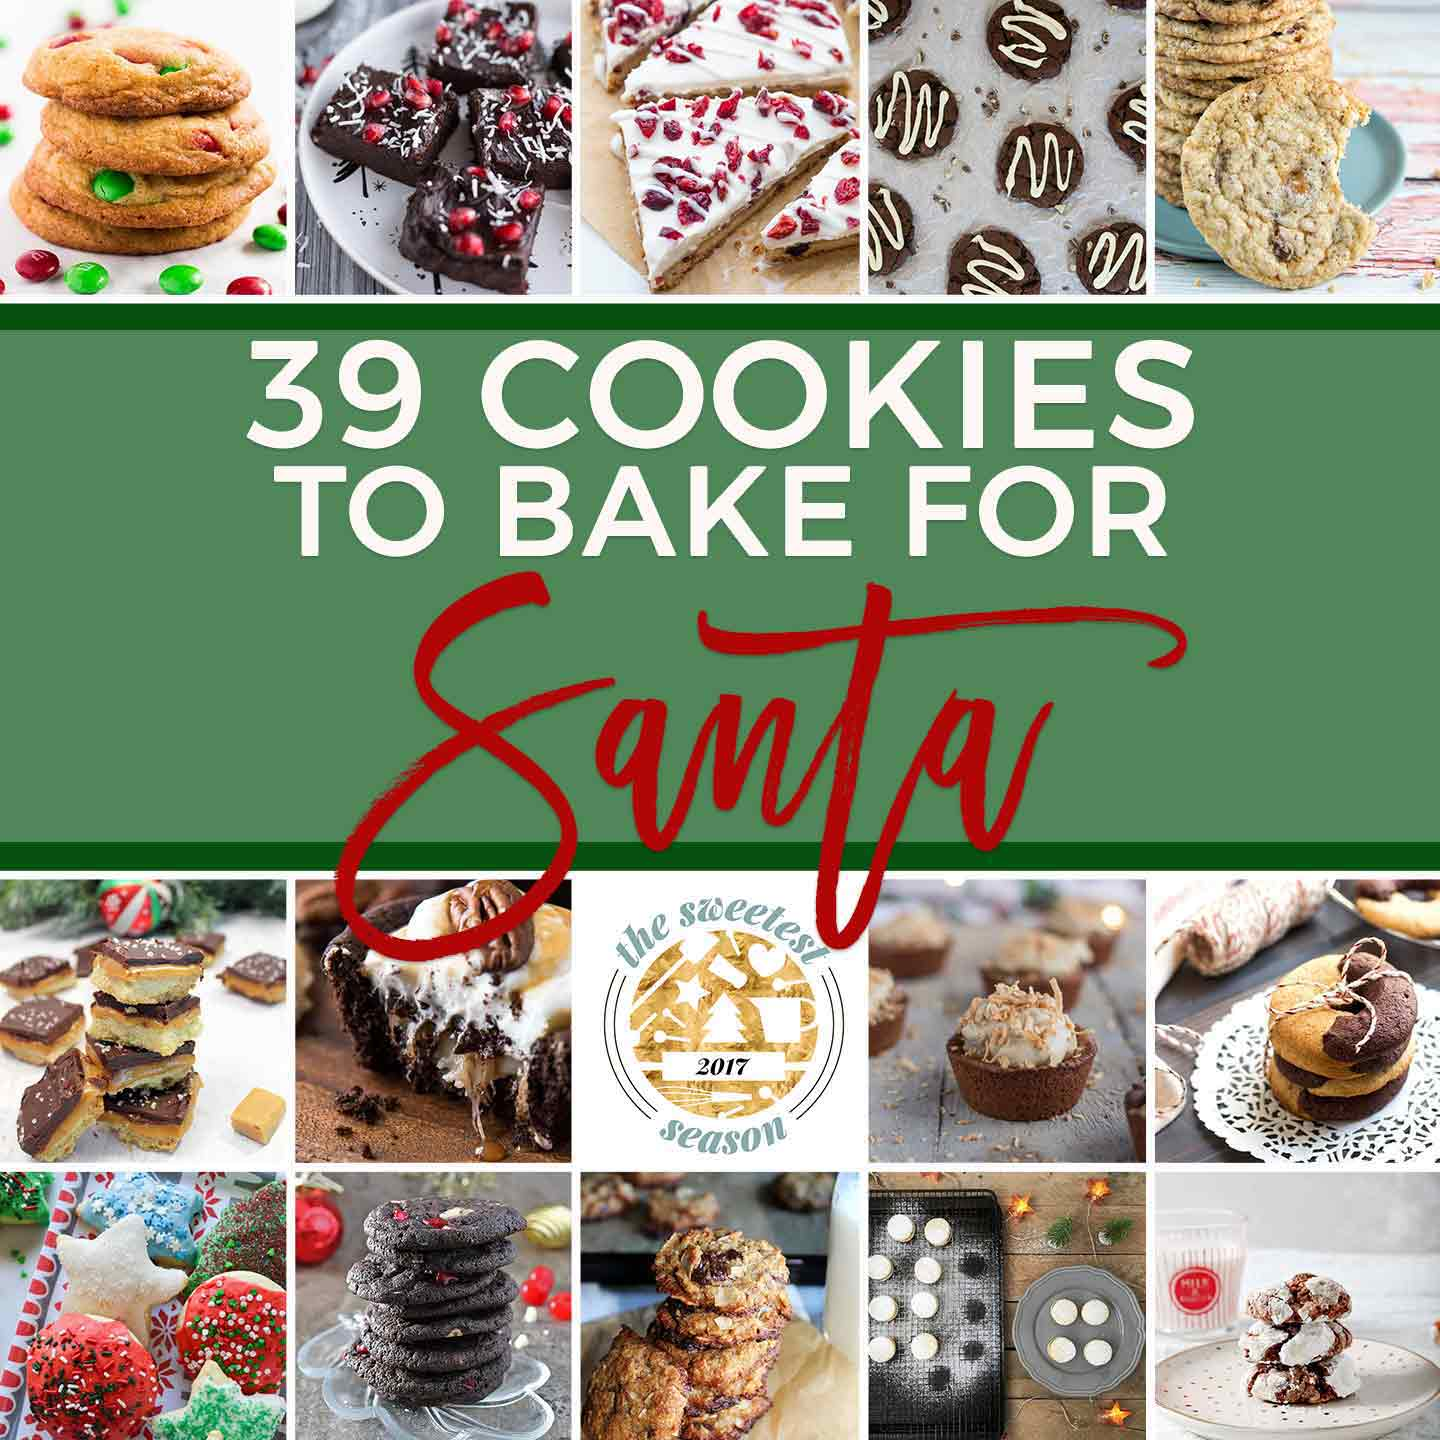 Holiday Cookies | Christmas Cookies | #sweetestseasoncookies | Santa Cookies | Easy Cookies | December Baking | Cookies for Kids | Cookies for Adults | Easy Holiday Baking